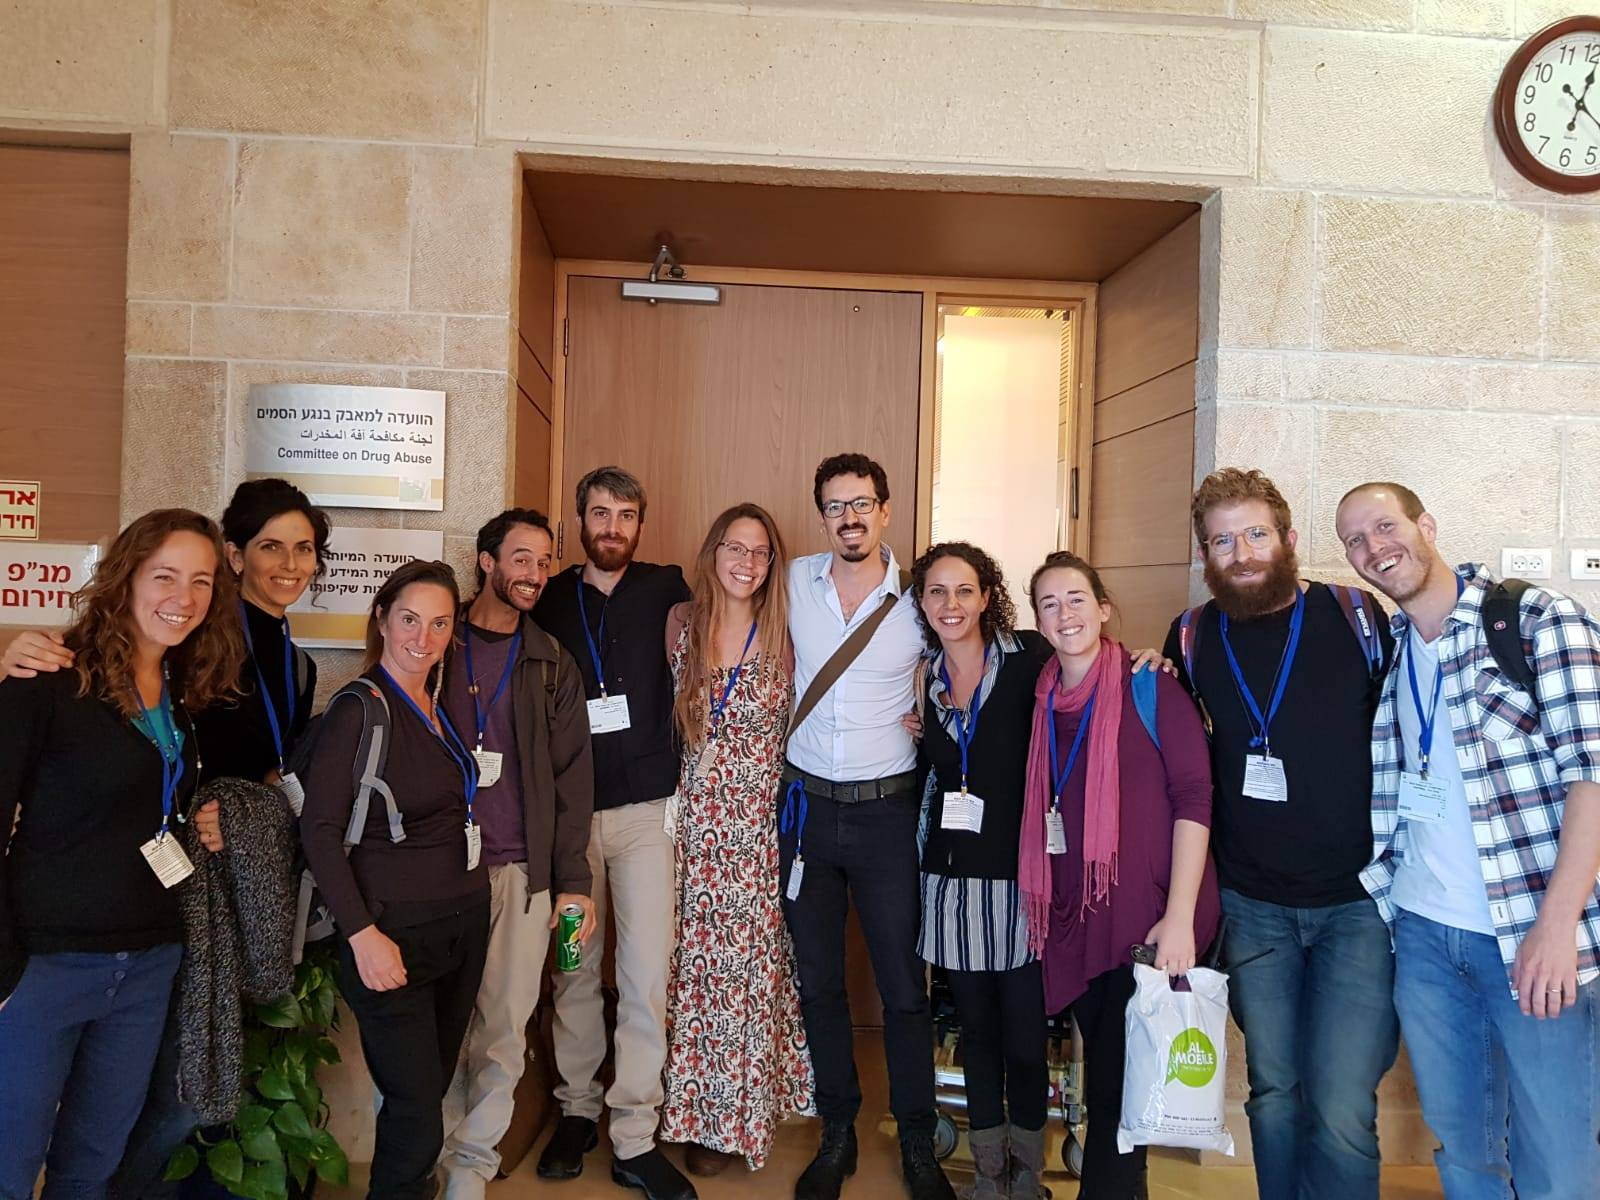 Members of SSDP Israel at the Knesset to talk about nightlife harm reduction and safe use.